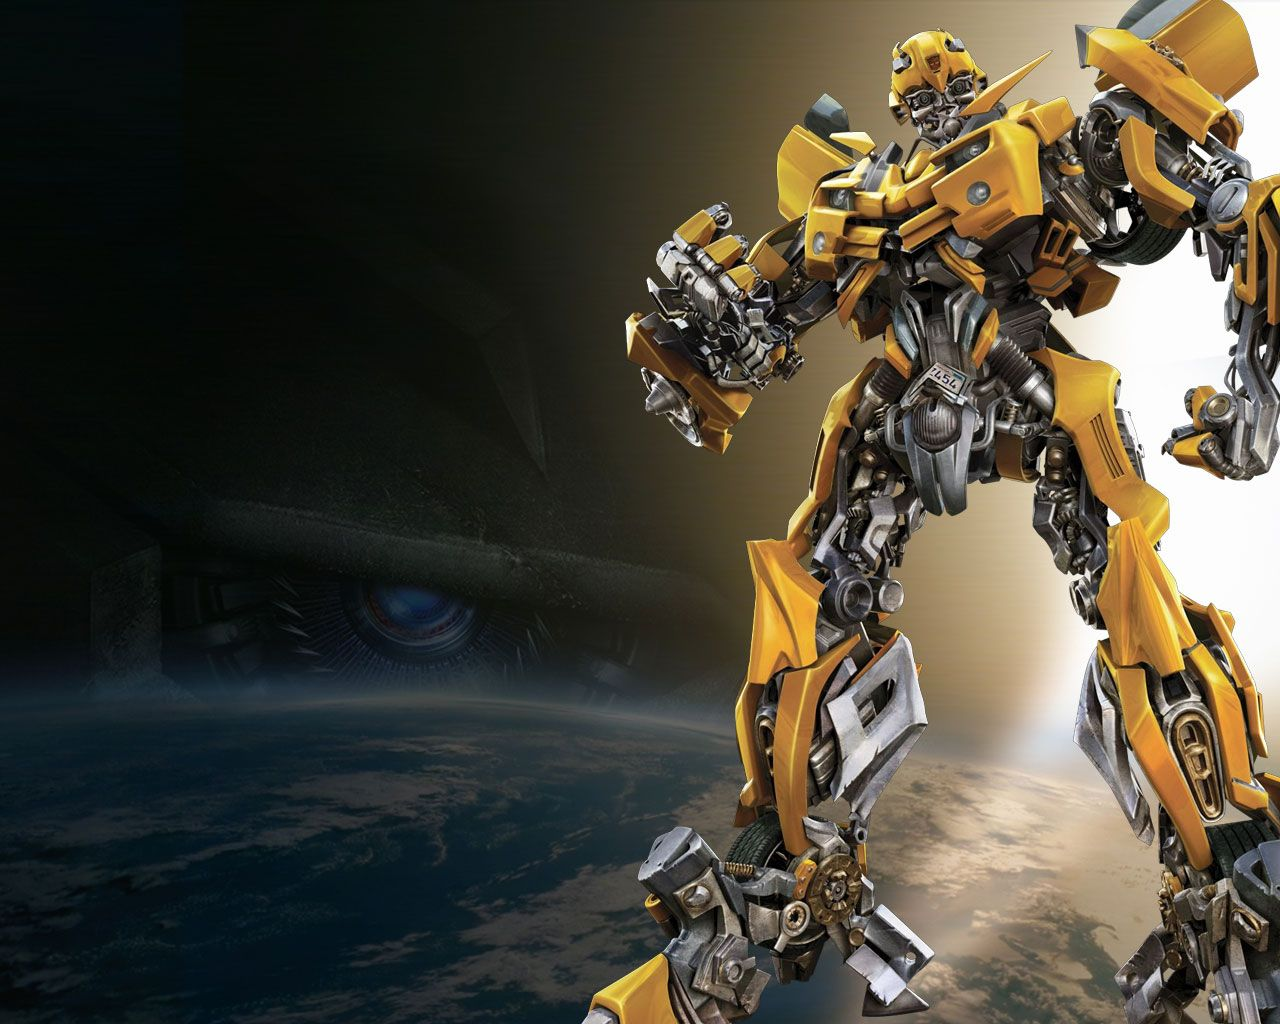 Transformers Bumblebee 445521 - WallDevil